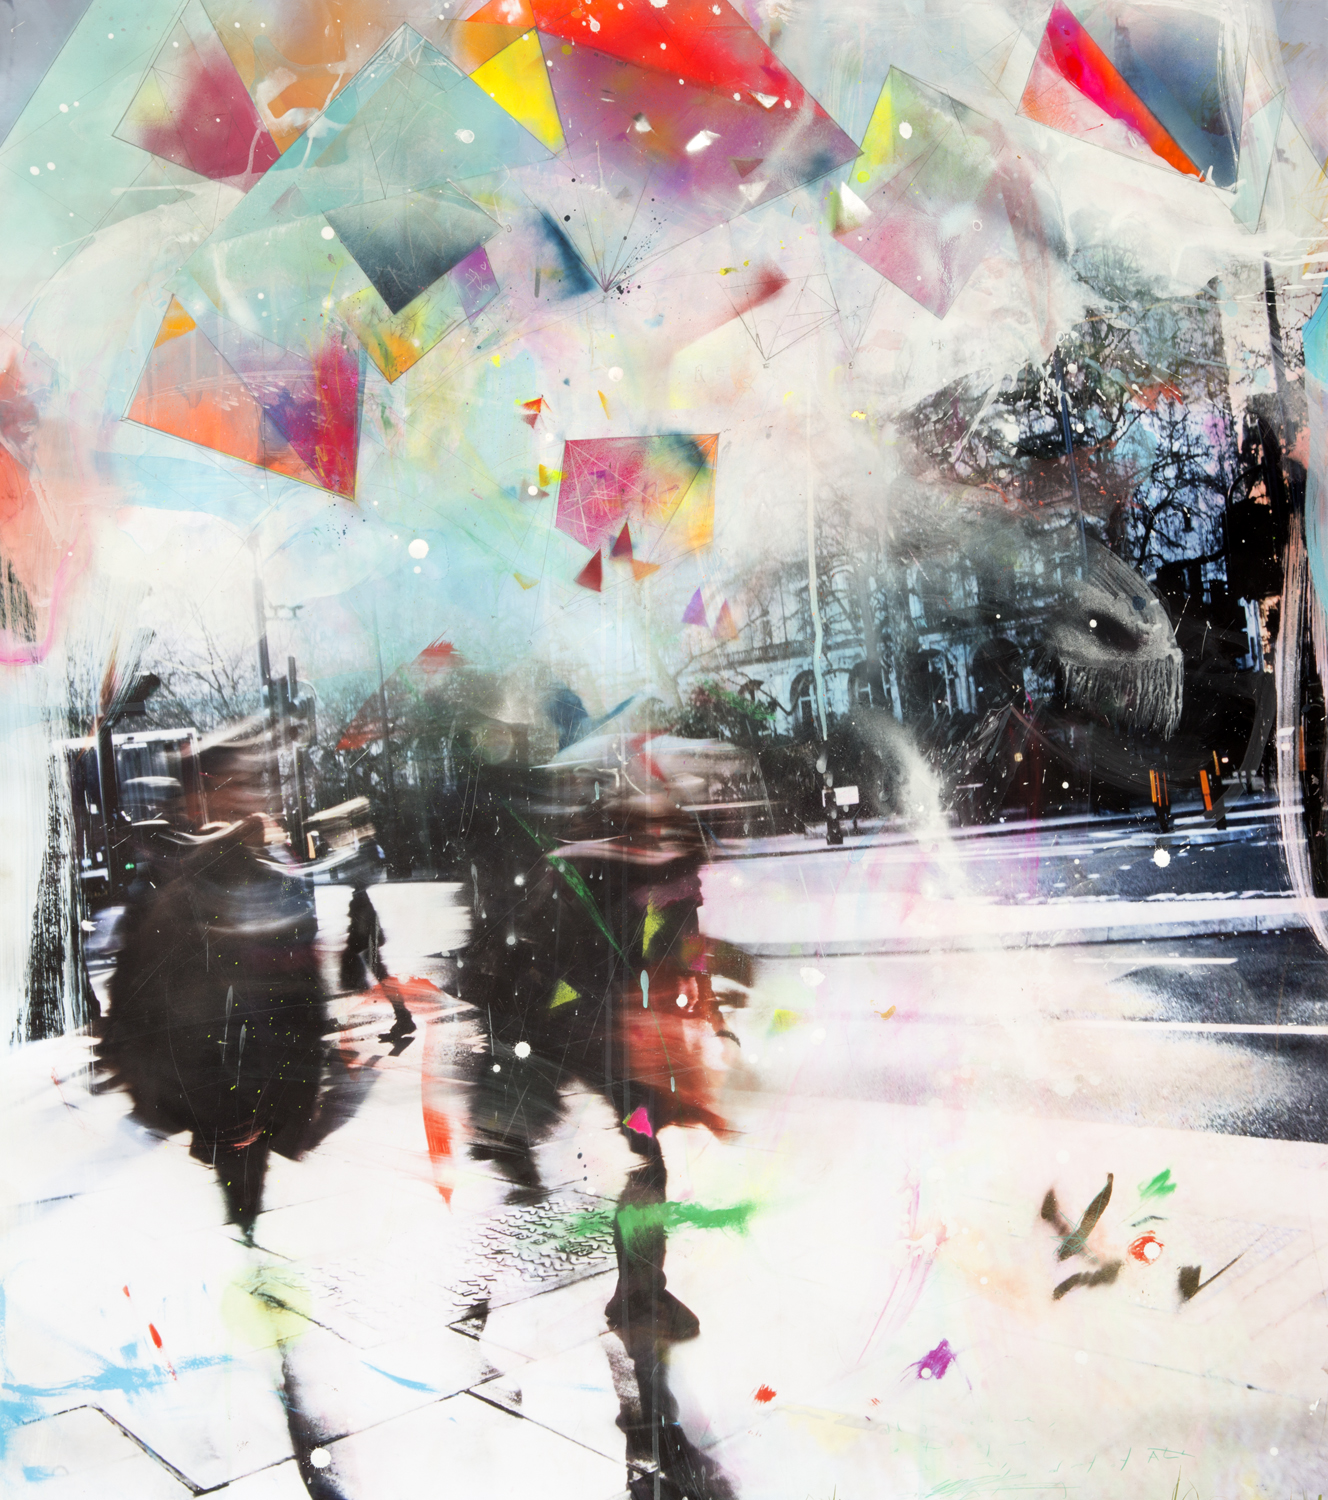 - Temporal Archival print on 300gsm Hahnemuhle paper, hand-coloured,mounted on diabond and resin coated.140cm x 120cm